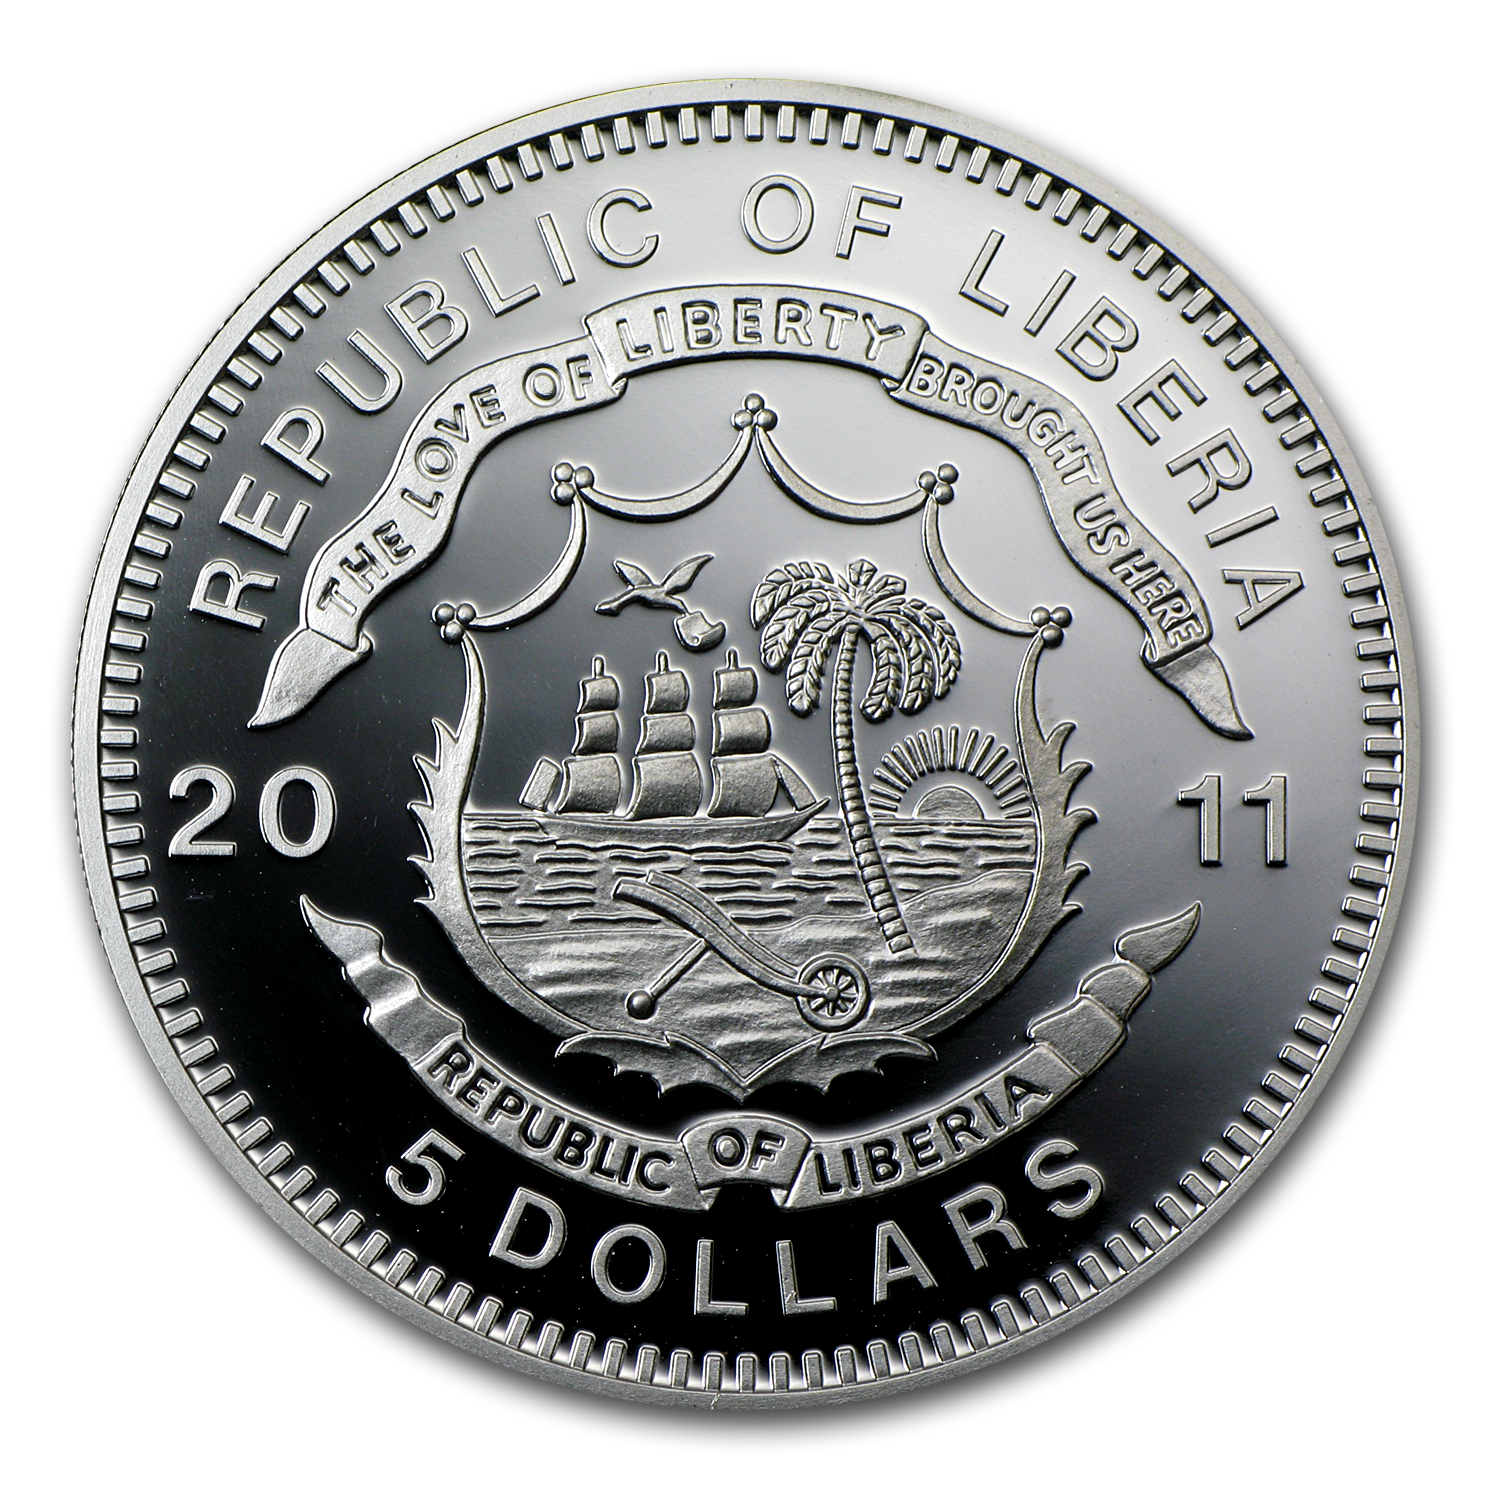 Liberia 2011 Proof Silver 5 Dollars - Adler Locomotive